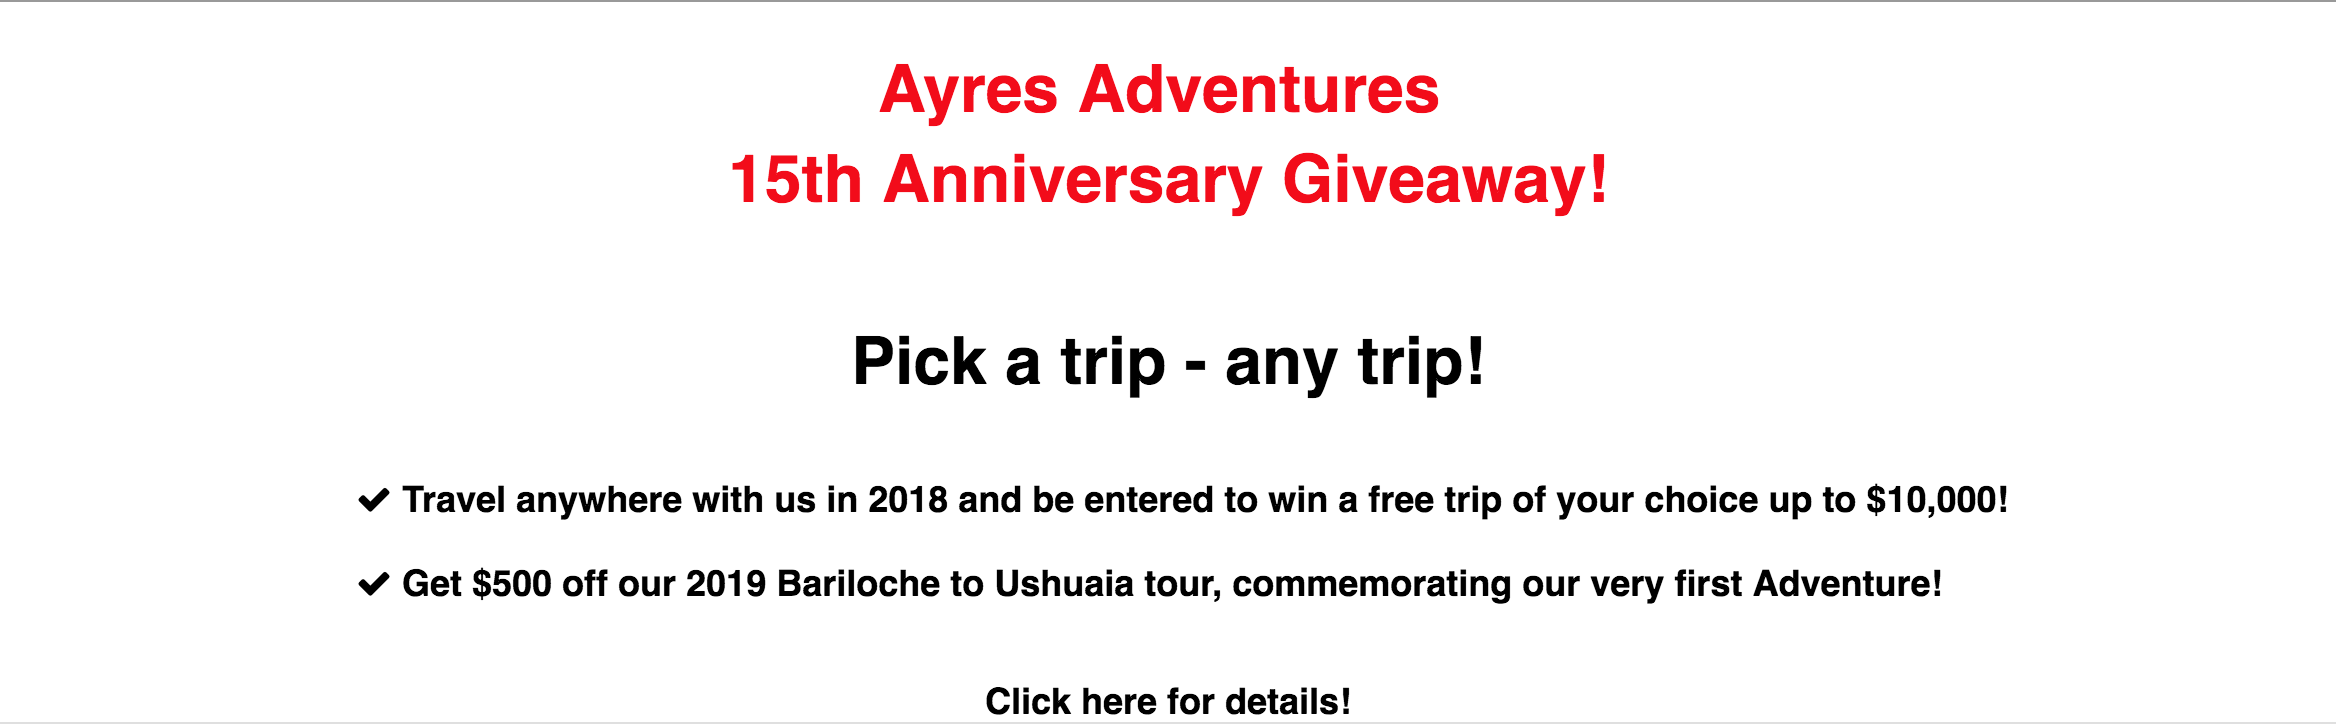 15th Anniversary Award by Ayres Adventures Motorcycle Tours Worldwide